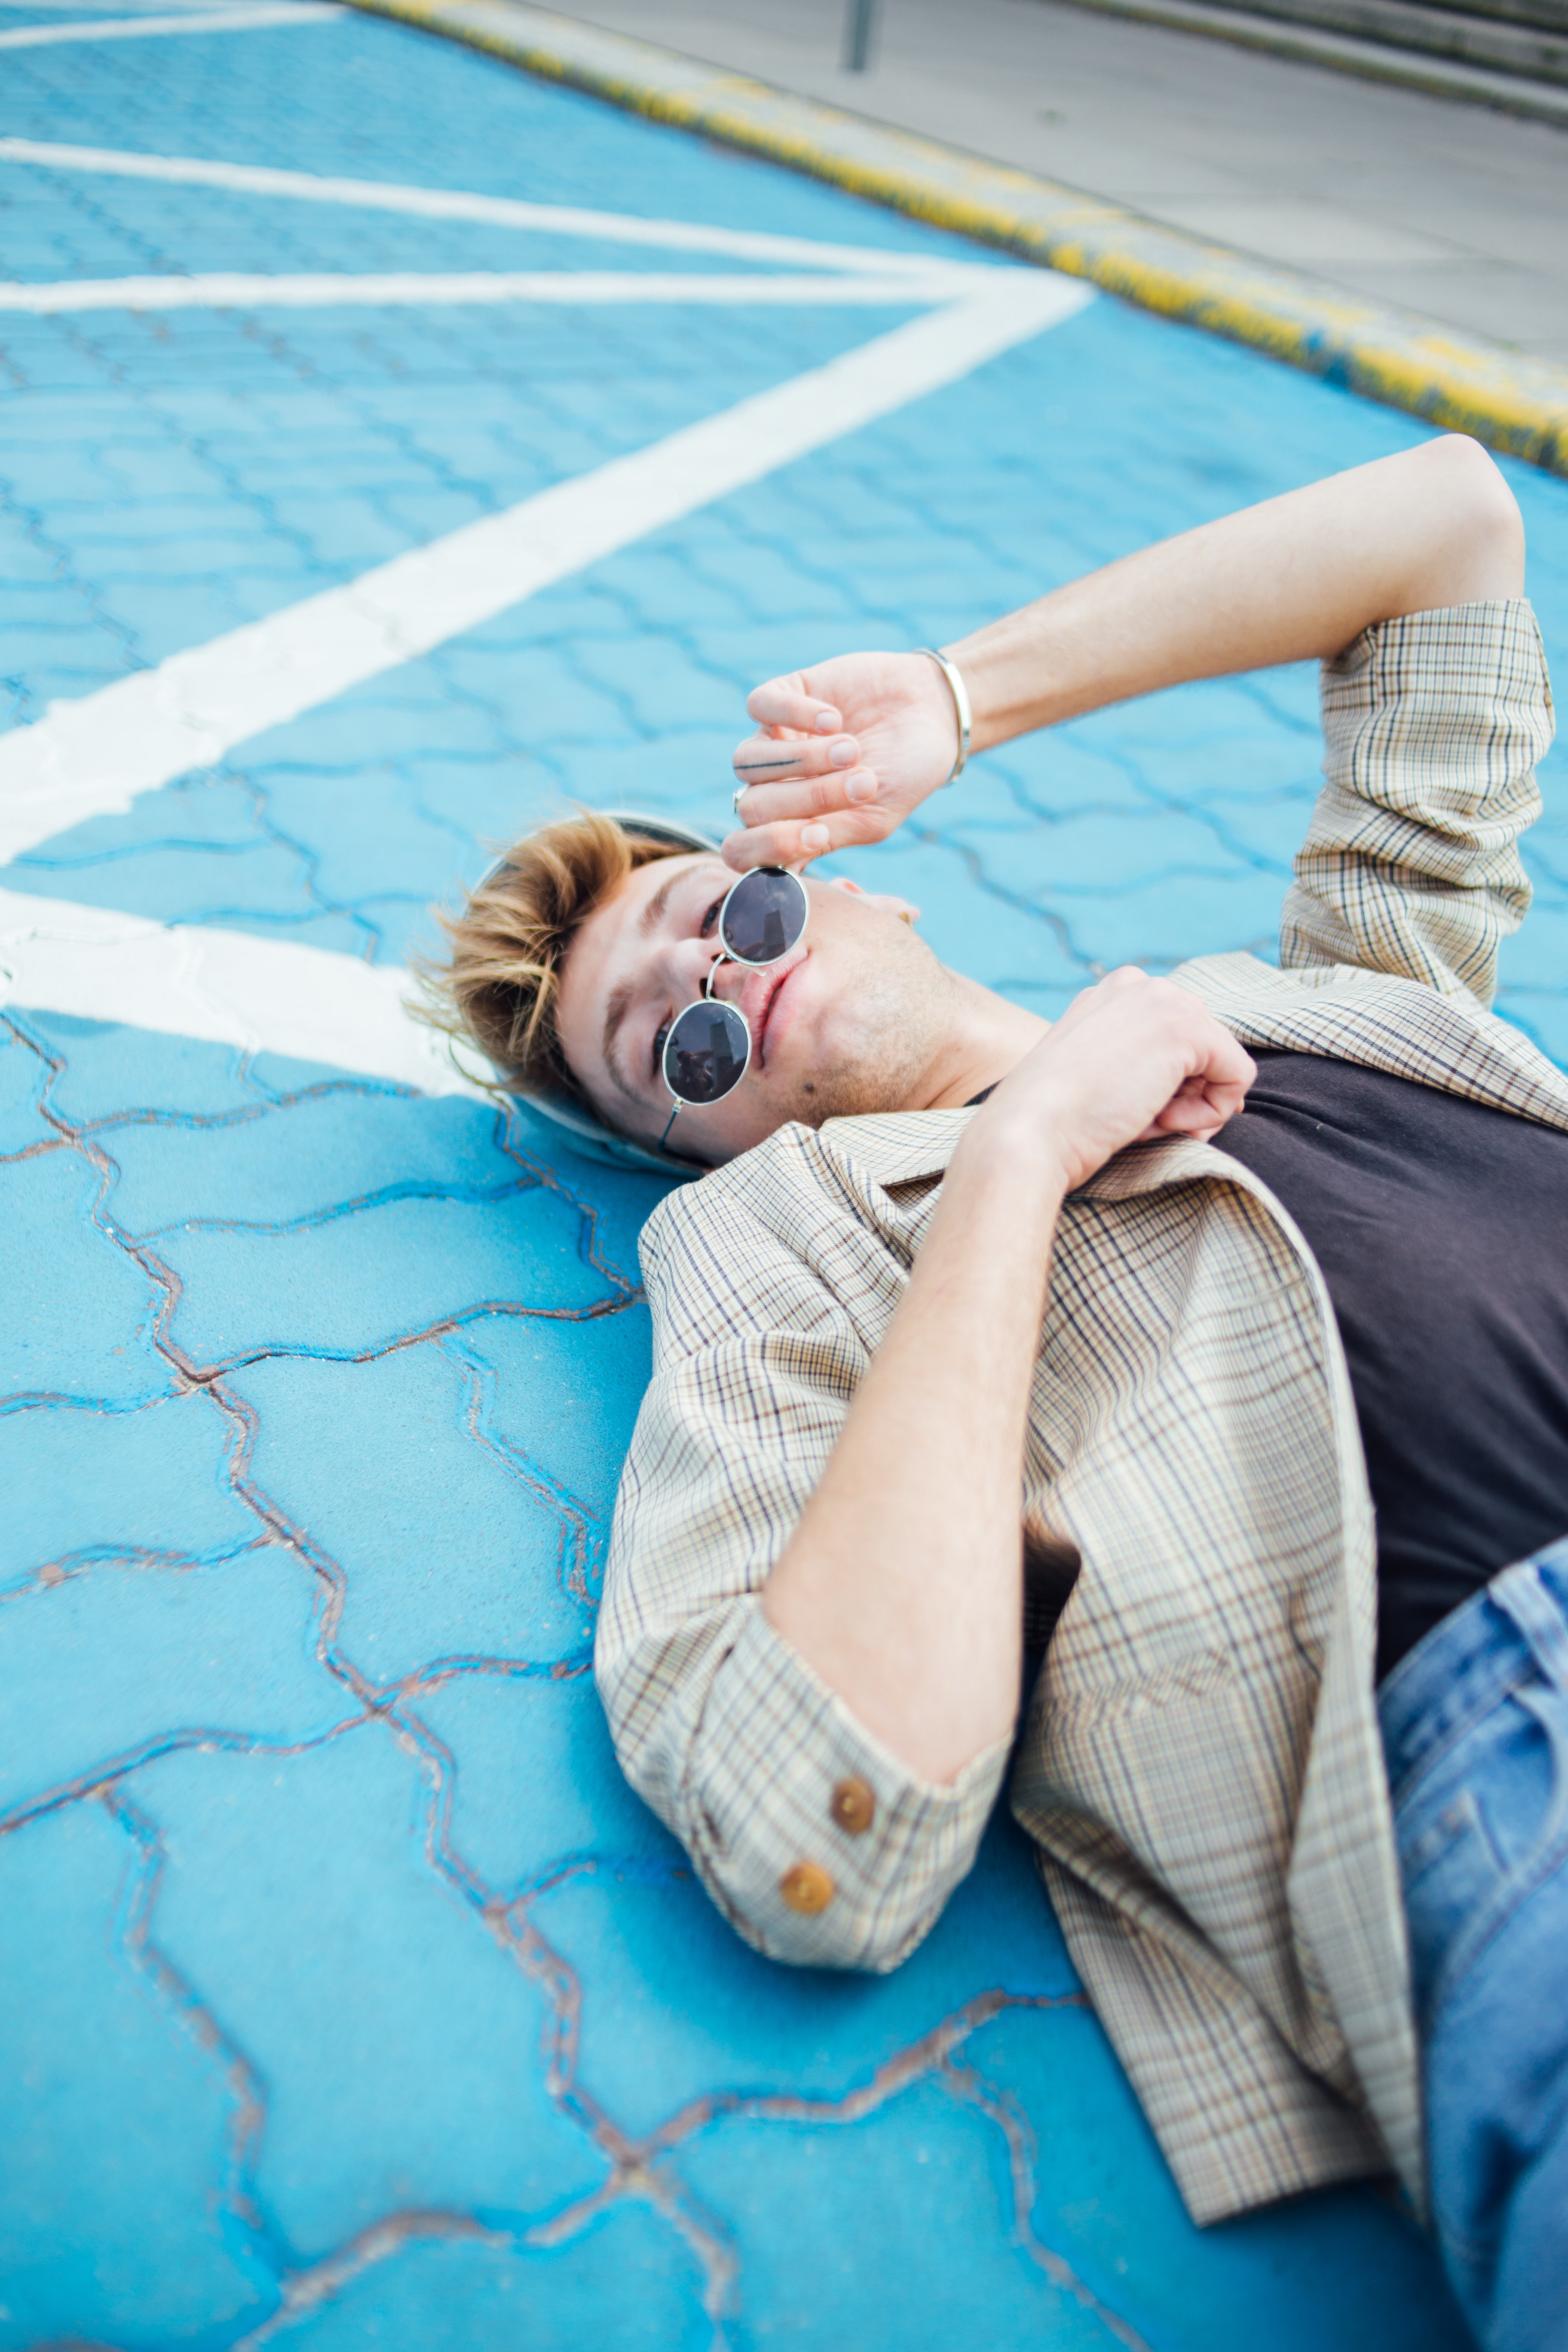 man lying on blue pavement